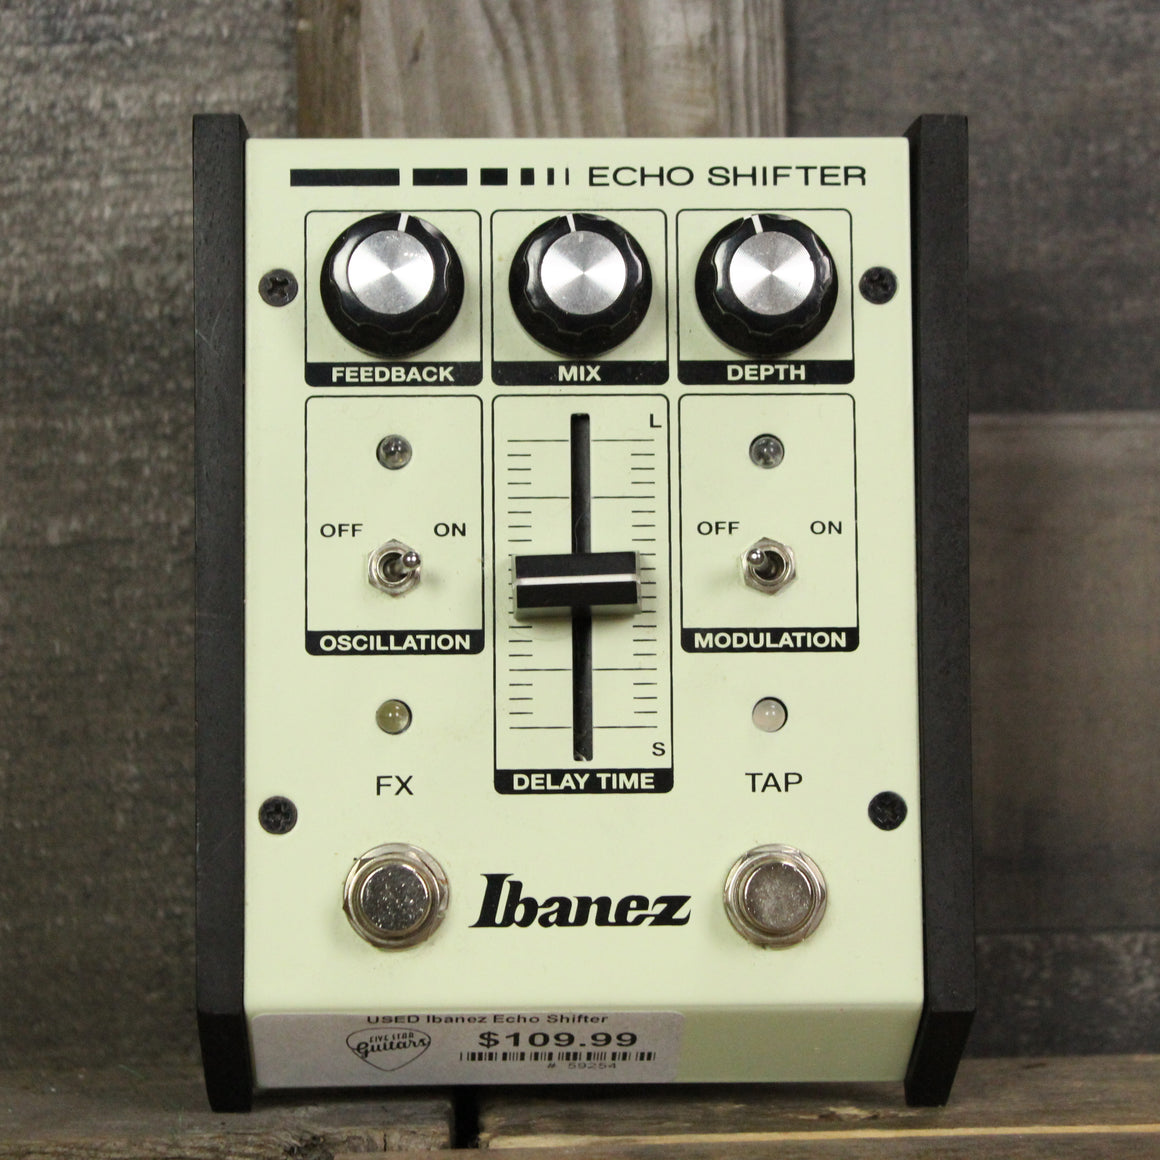 Pre-Owned Ibanez Echo Shifter